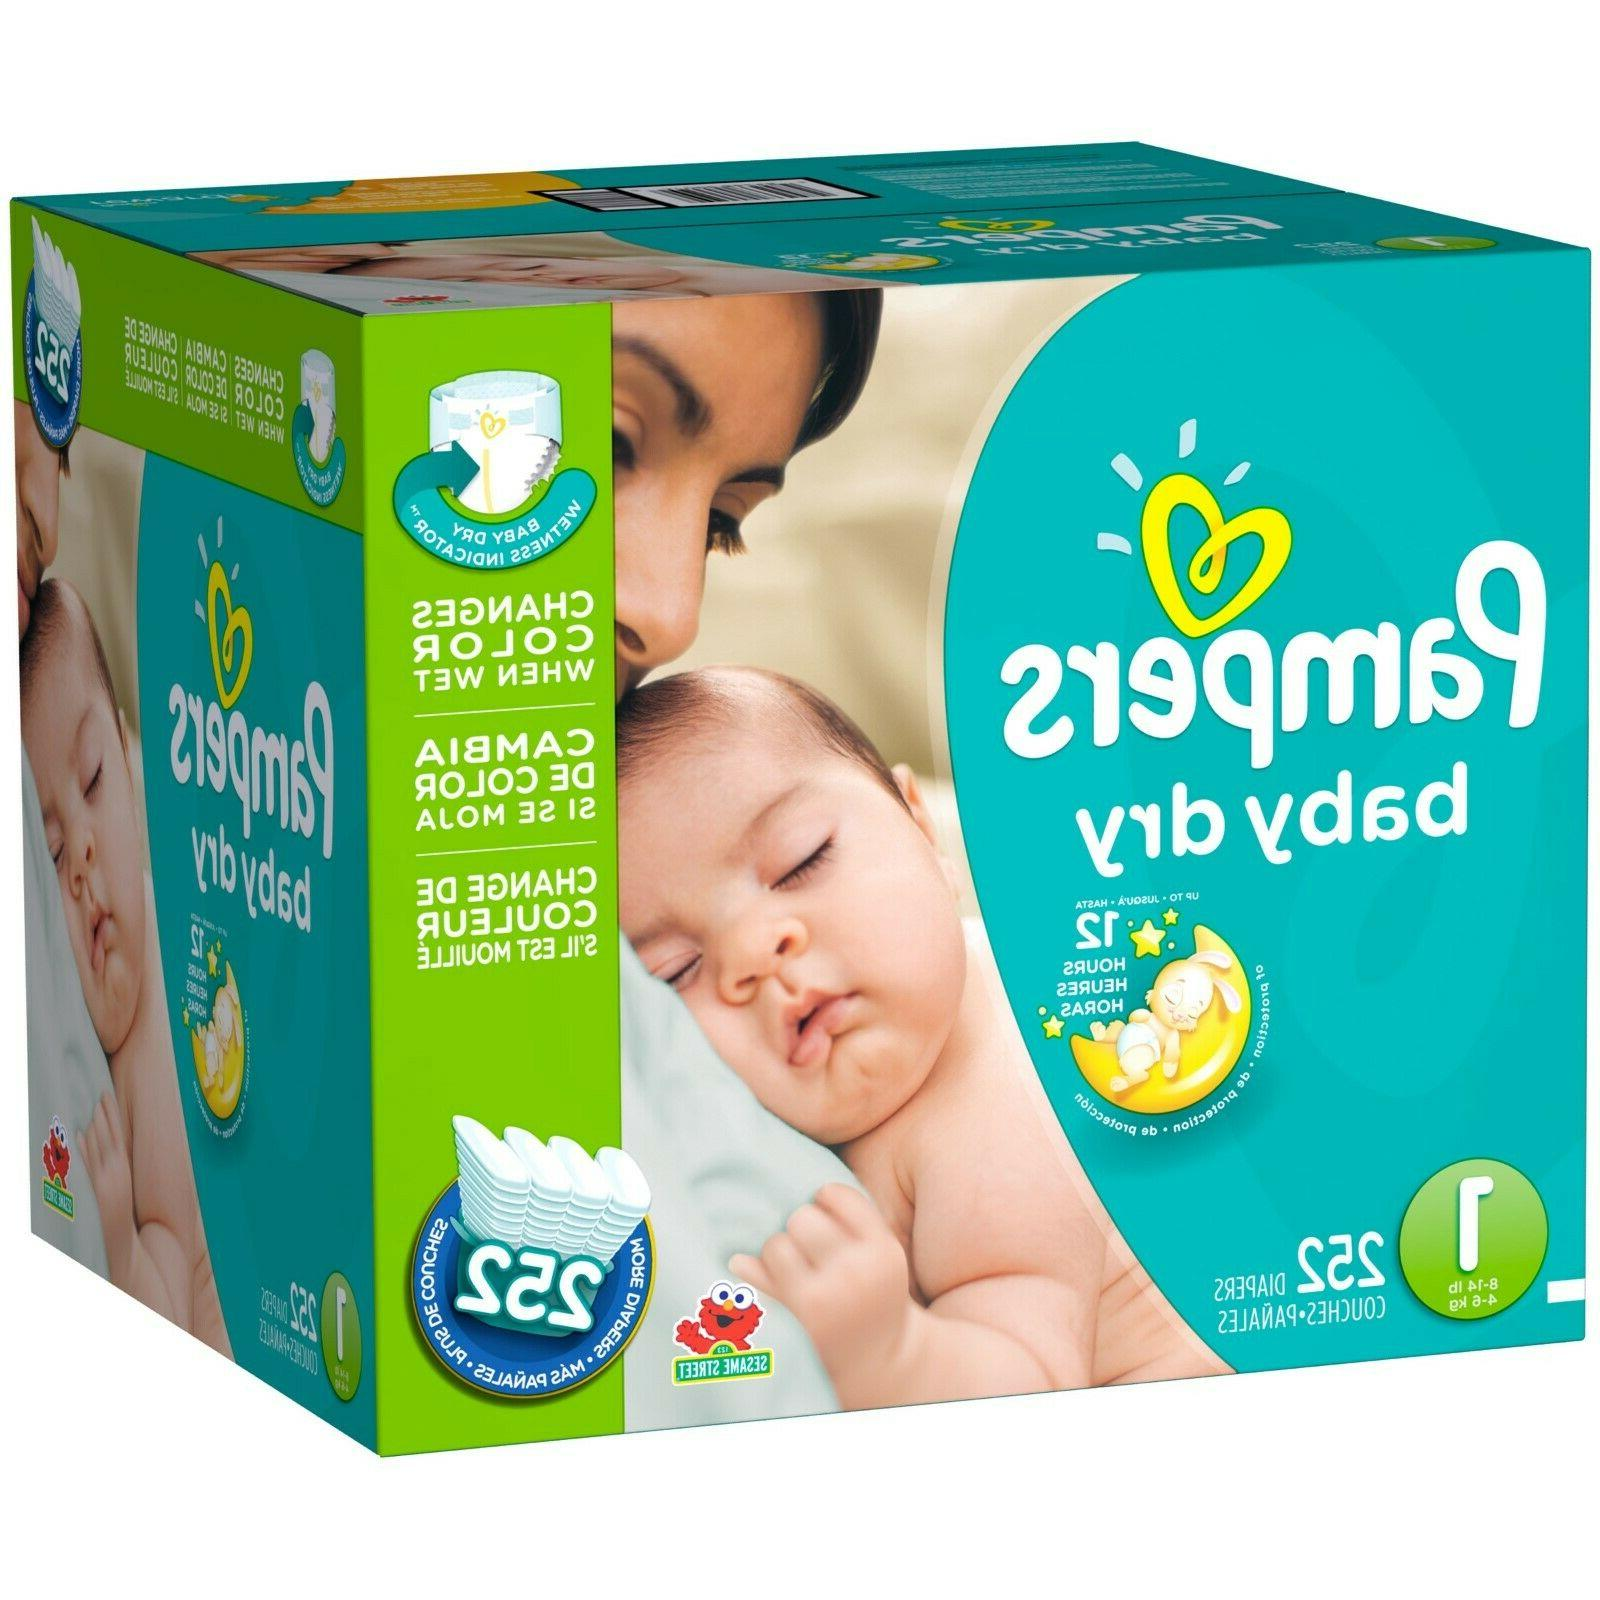 baby dry diapers 252 count size 1